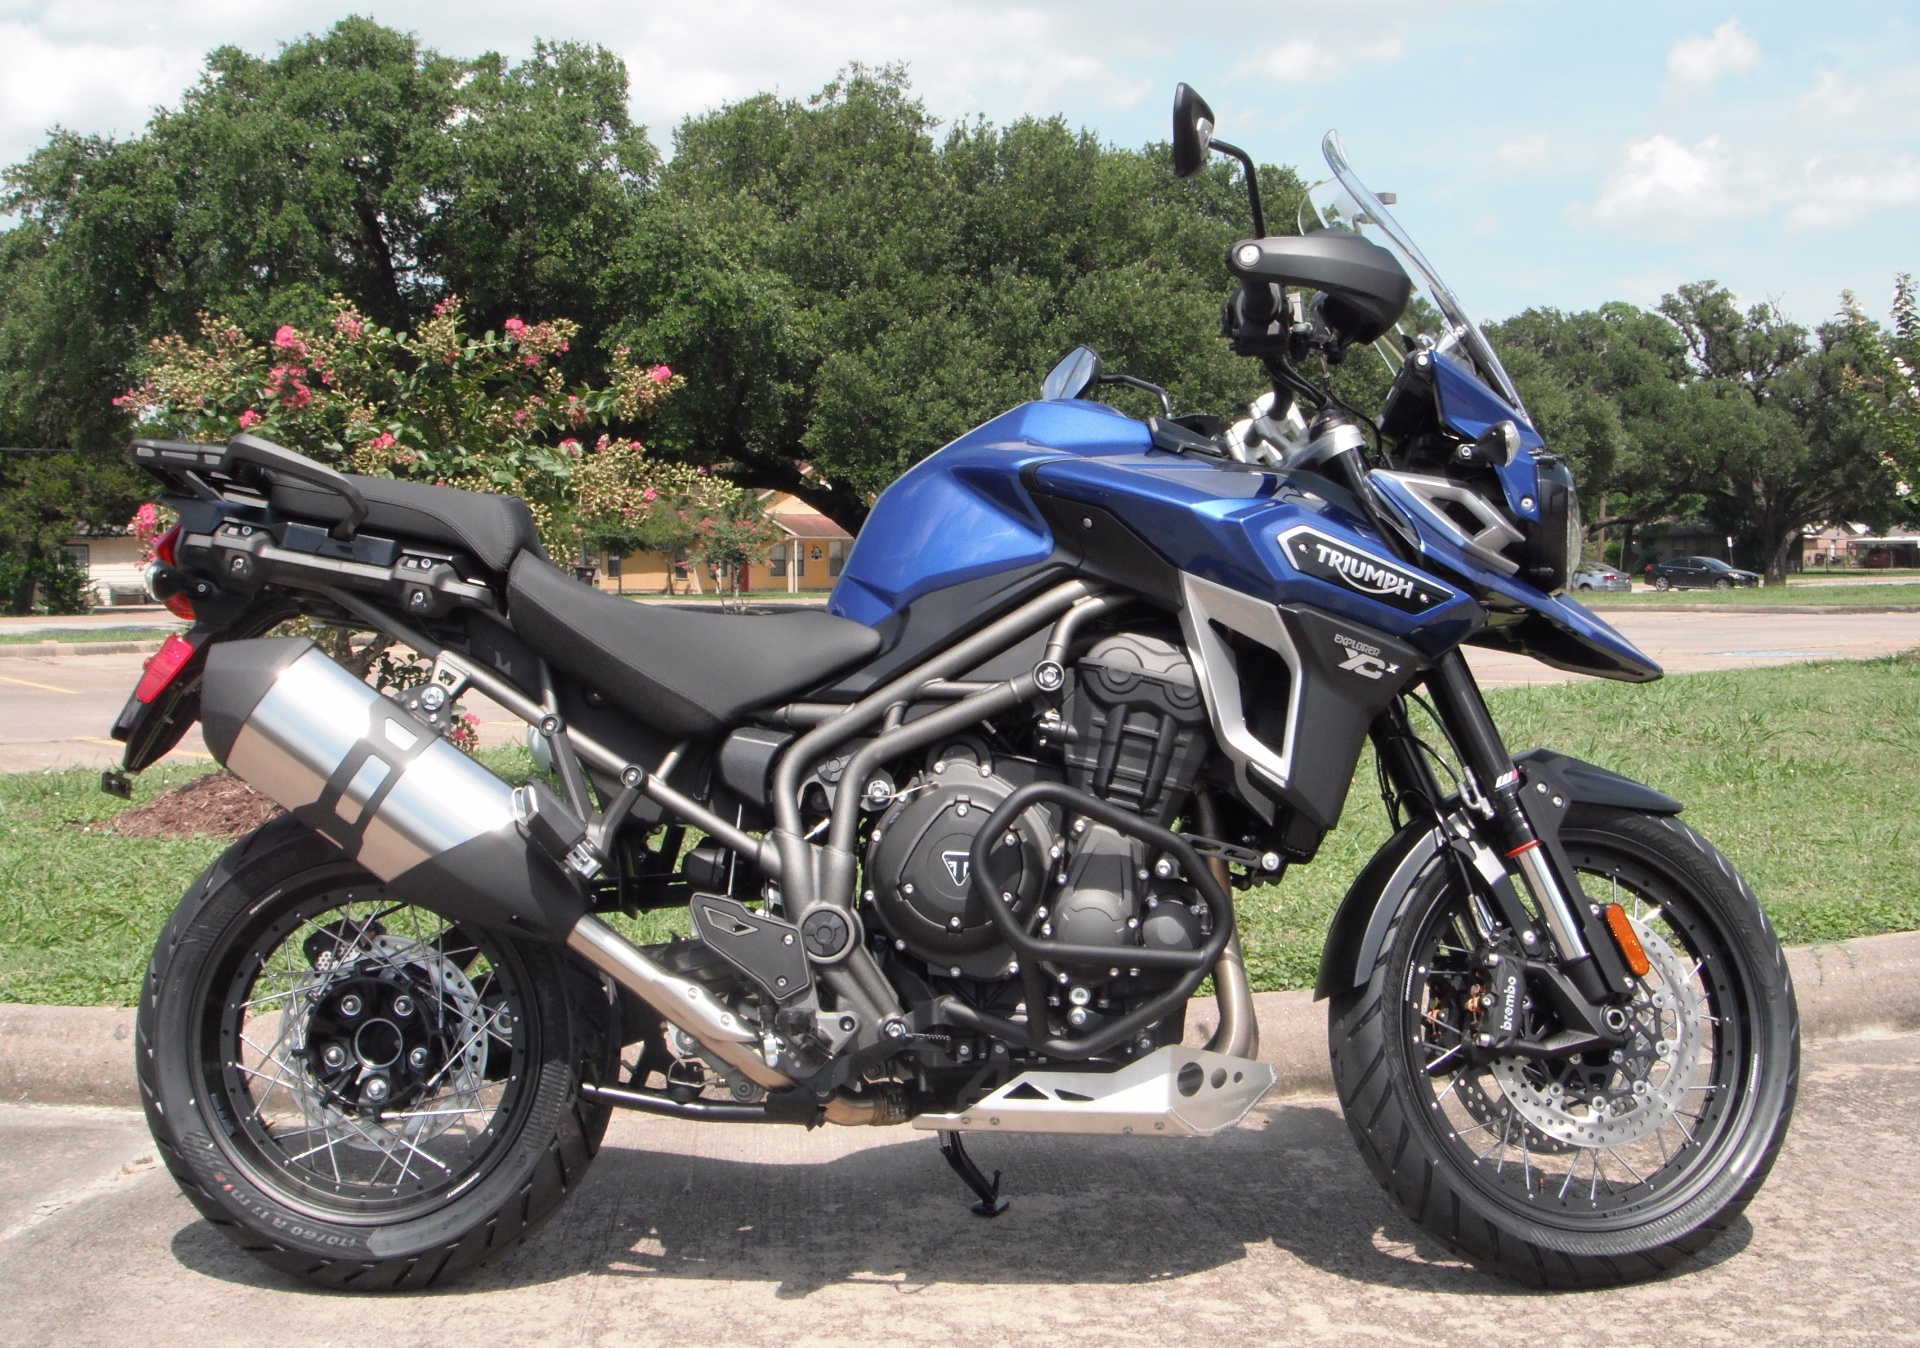 new 2017 triumph tiger explorer xcx motorcycles in south houston tx. Black Bedroom Furniture Sets. Home Design Ideas